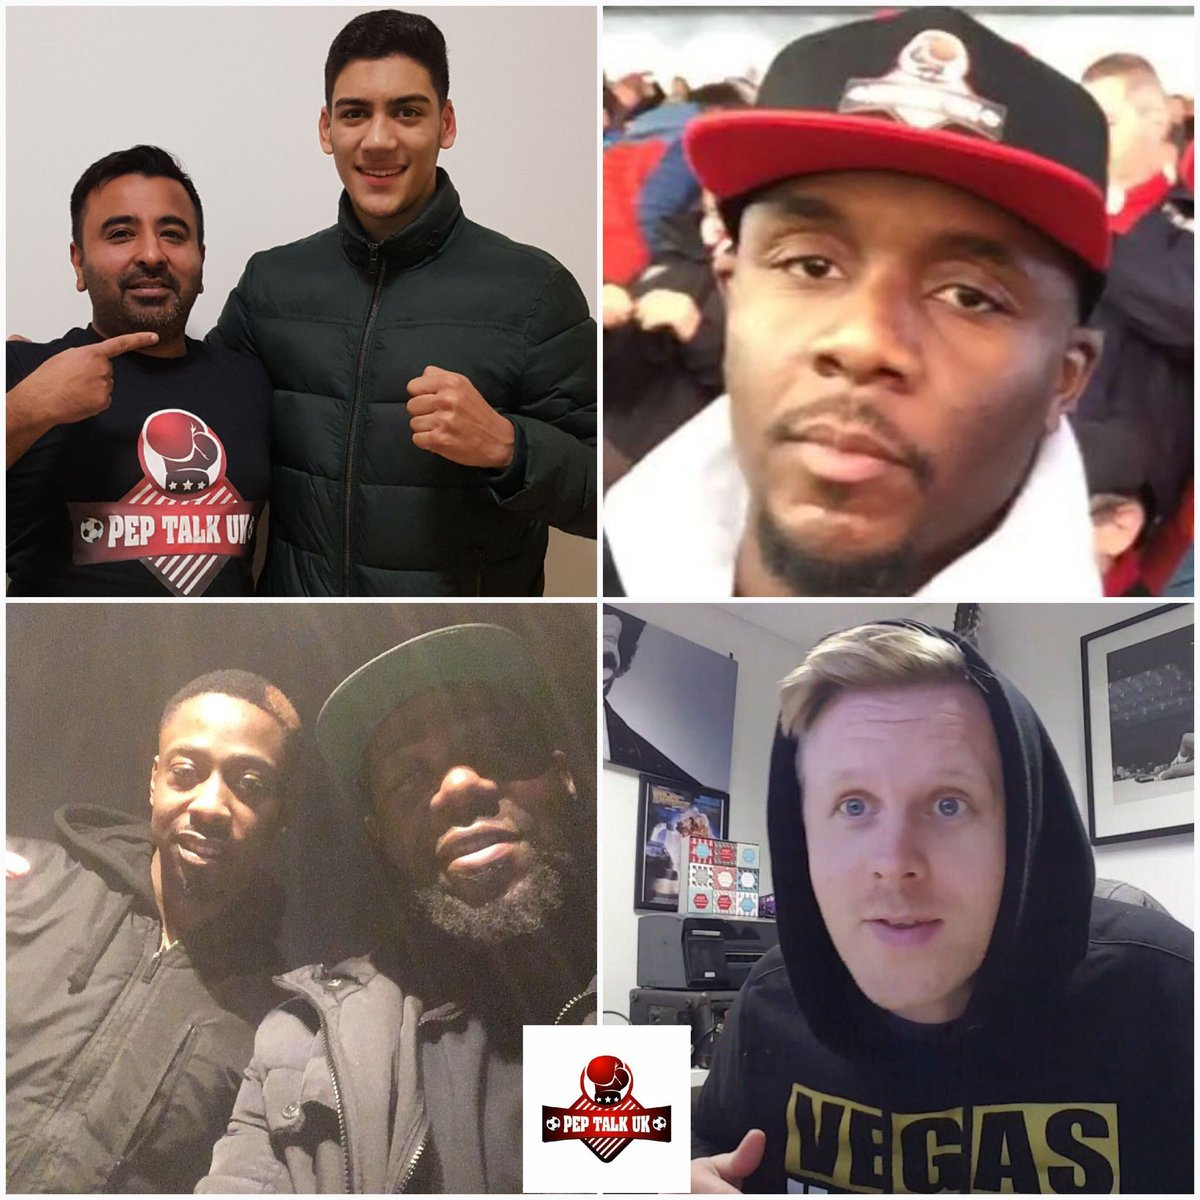 @Peptalk_uk #podcast fts interview with @sheeraz_hamzah (at 48 mins) &amp; Special Guest Panelist @OfficialOzzieB of #morefirecrew (listen to freestyle)  @BenjiBoxing  @Pascal_De_Sade round up this weeks #Boxing &amp; #Football !!#FridayFeeling #BlackFriday   https://www. youtube.com/watch?v=QLZyzC 9qAa4 &nbsp; … <br>http://pic.twitter.com/gNlr6VNxNx